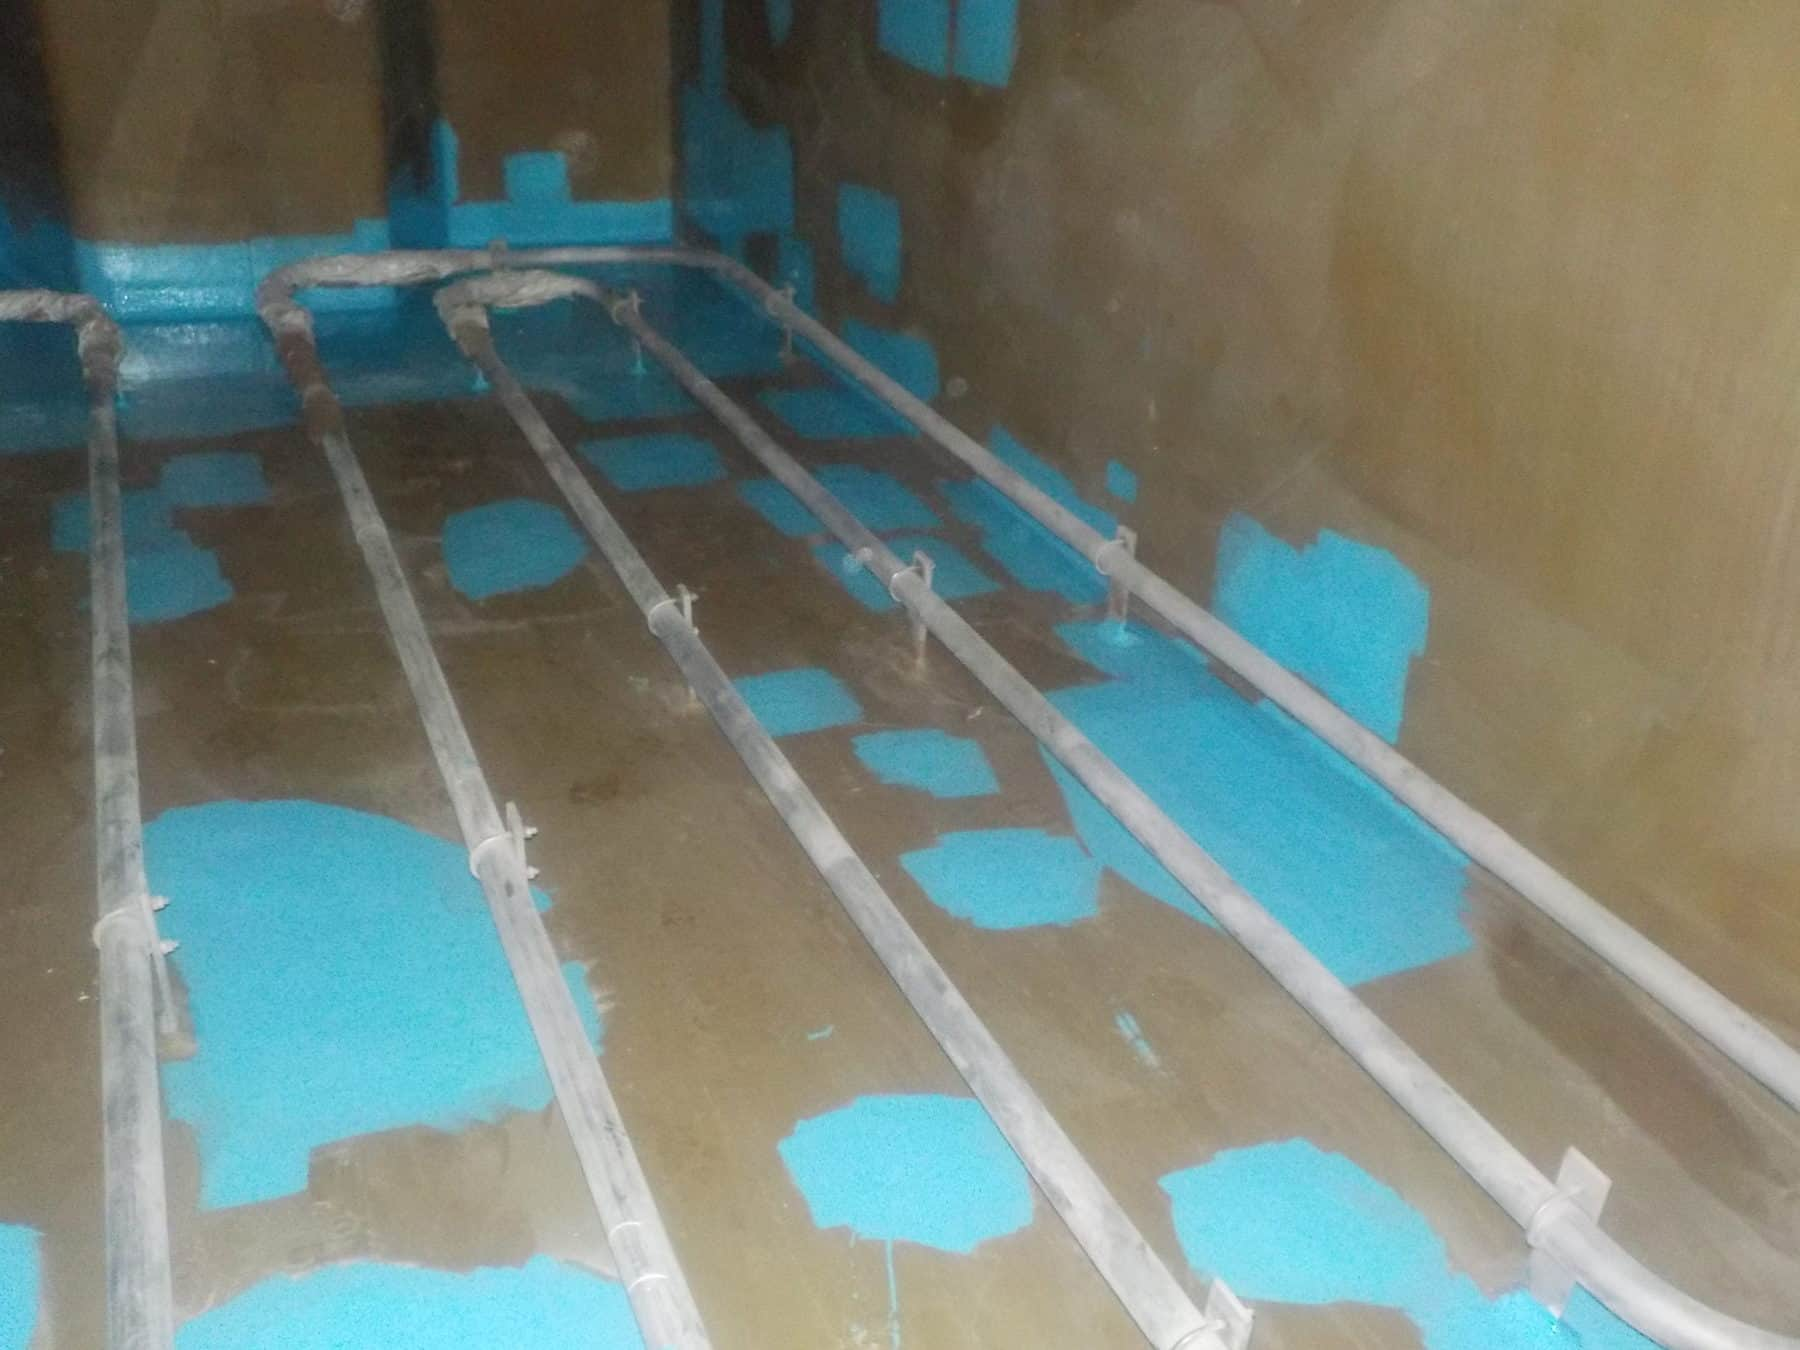 tank internals with blue paint spots and steel piles